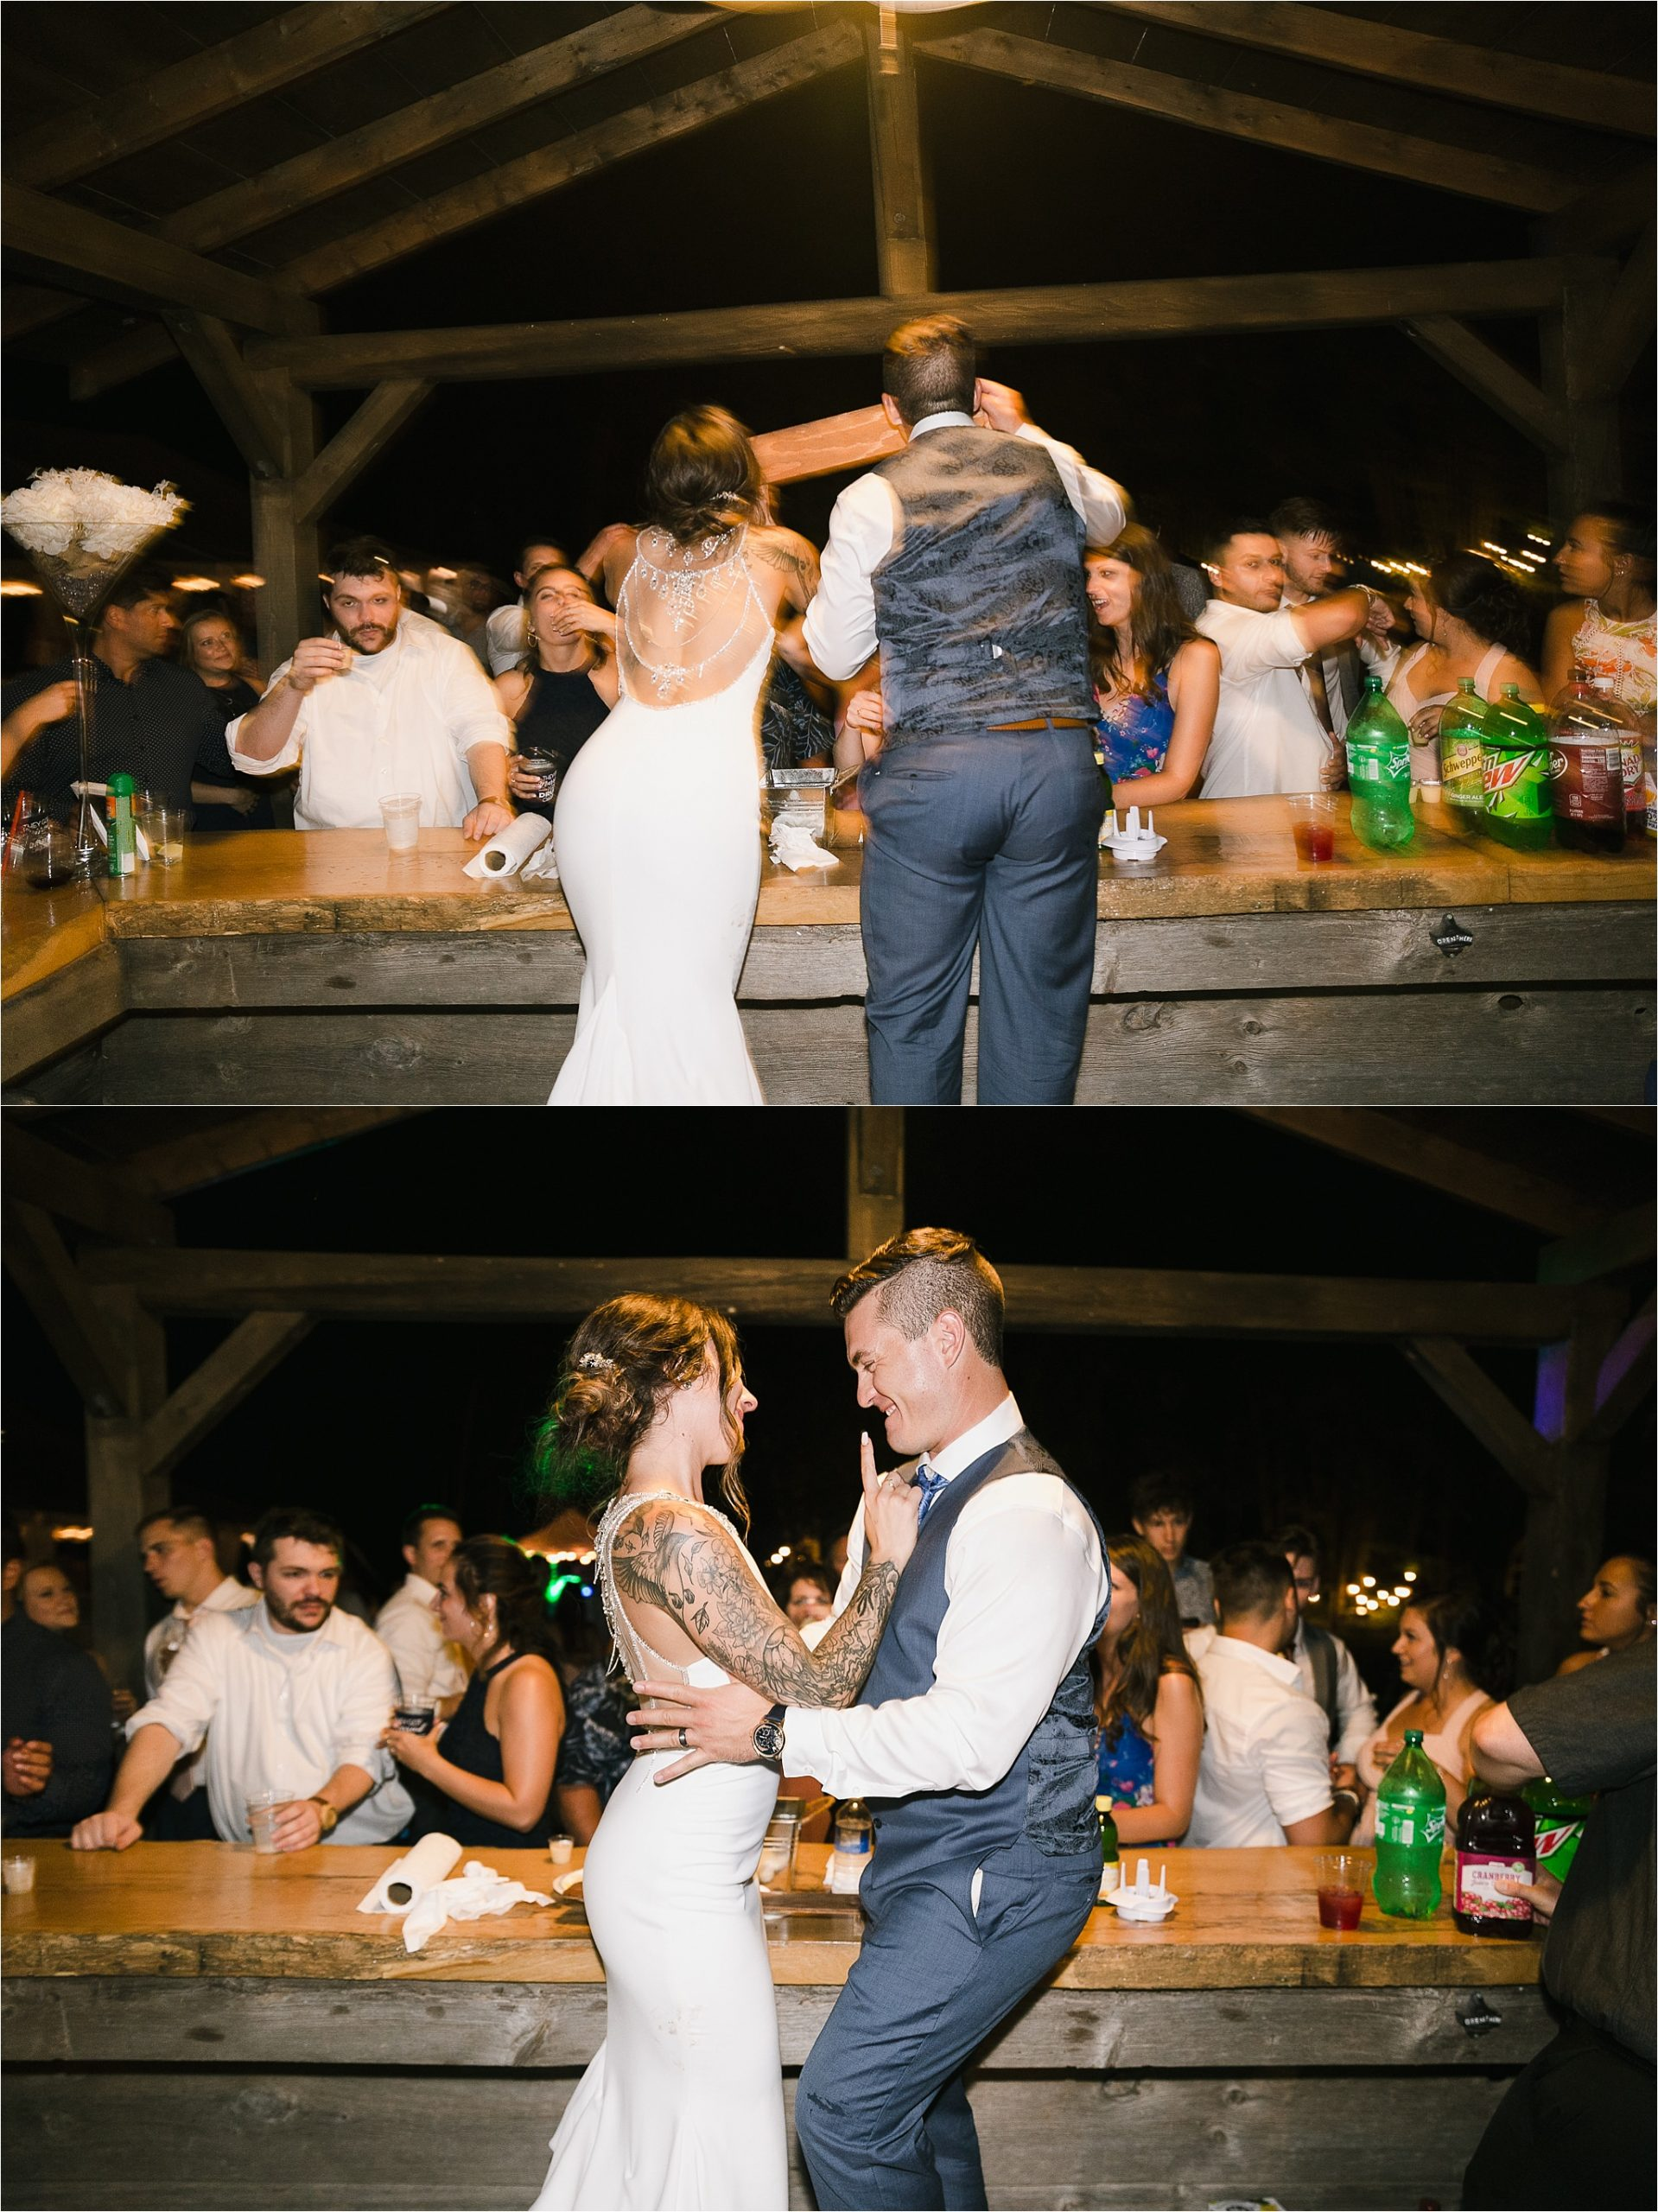 Sonia V Photography, The Clearing reception wedding venue, party dancing, shots